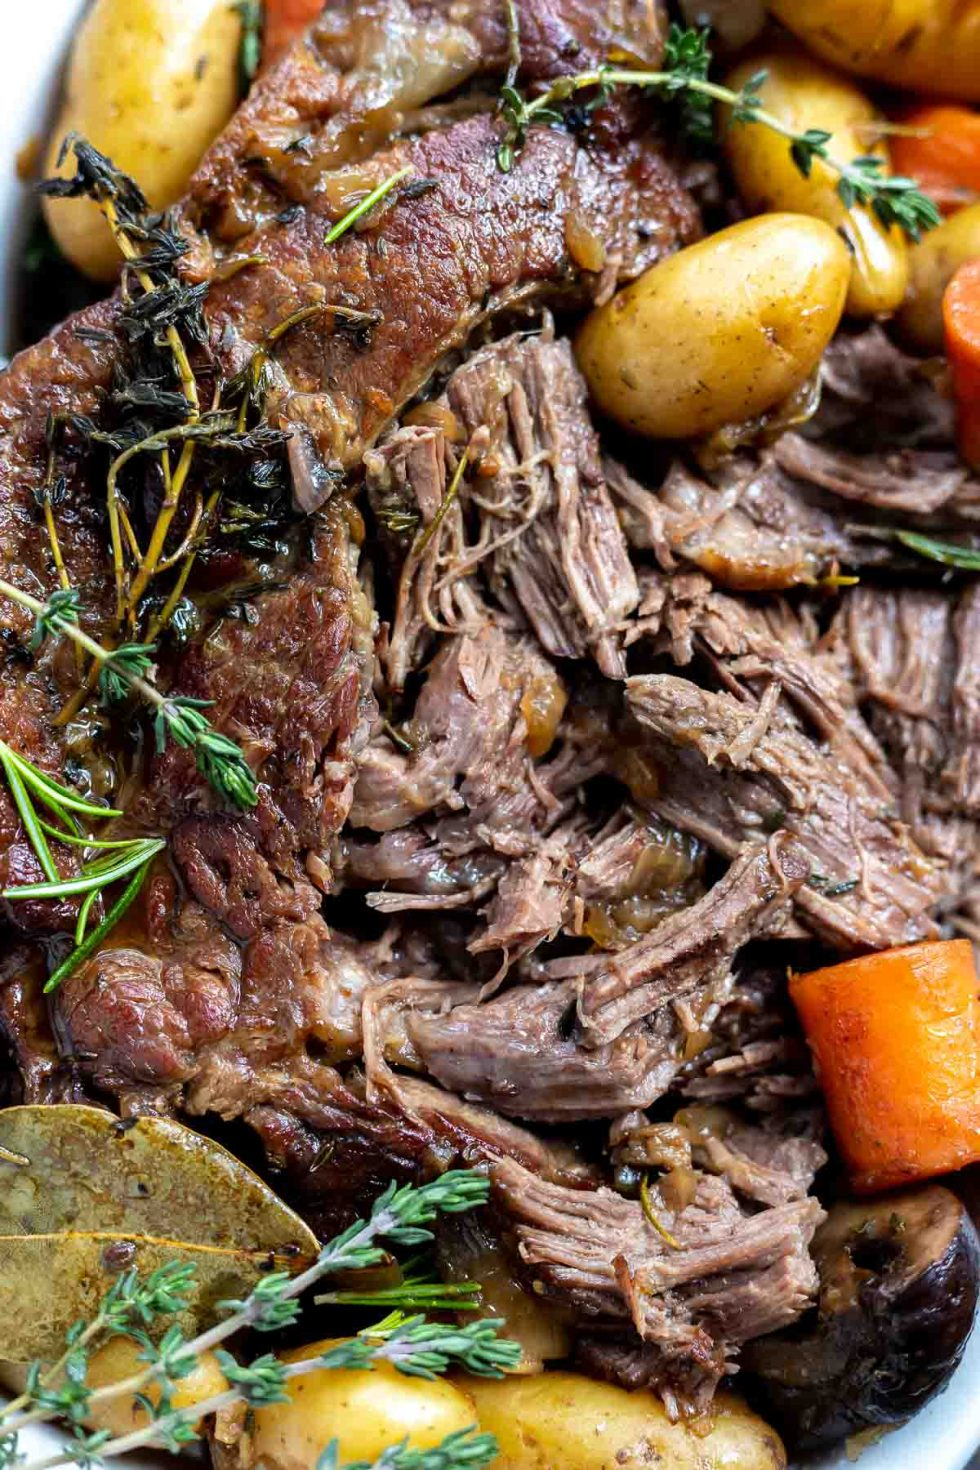 shredded pot roast with herbs and vegetables